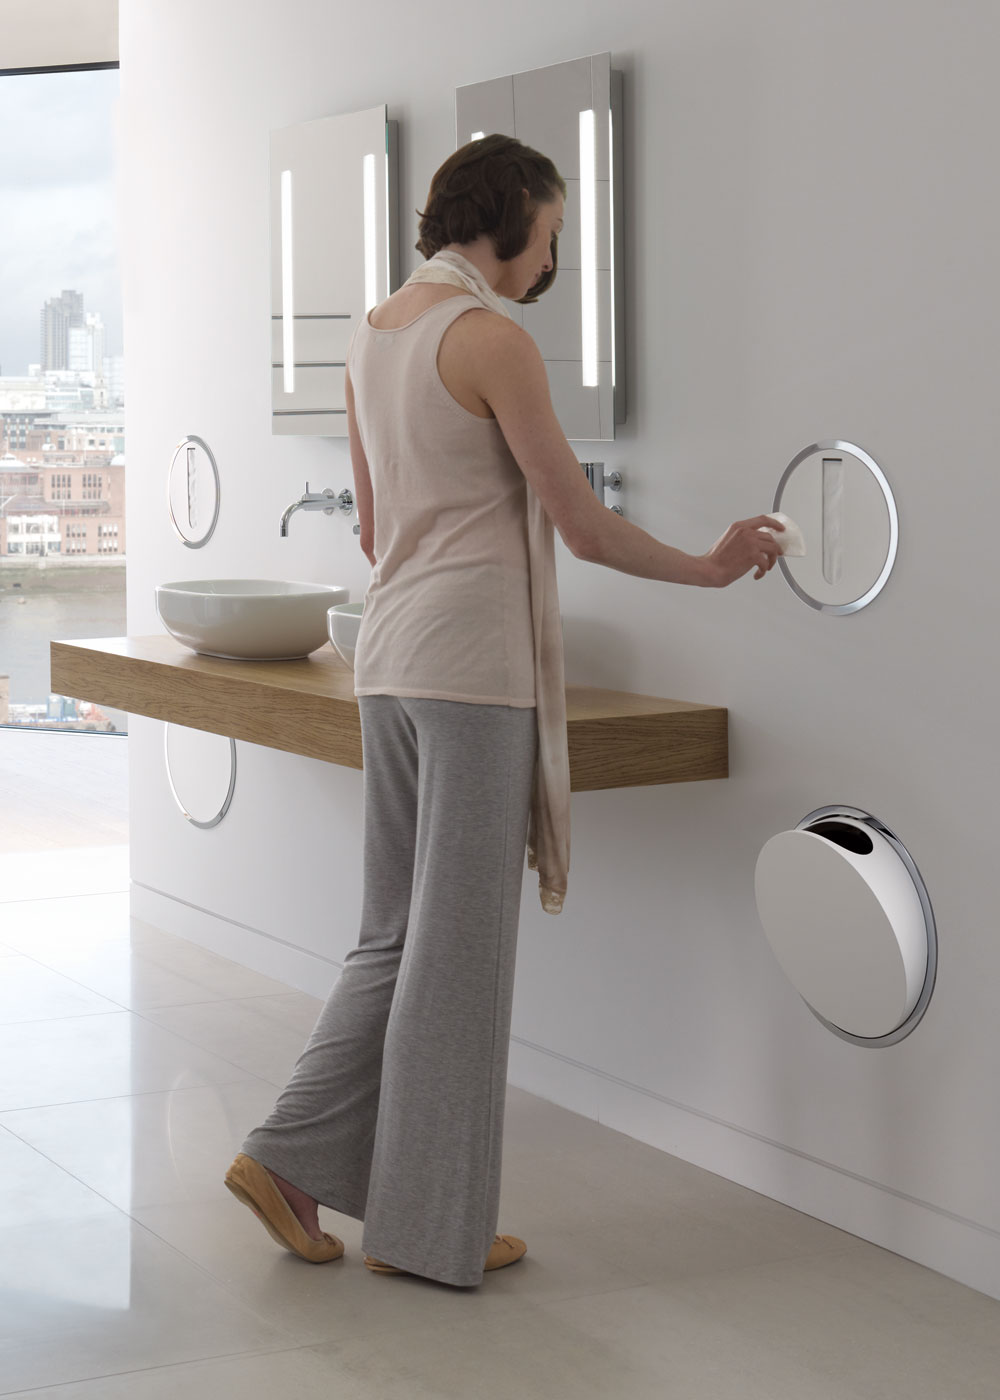 The German Design Award 2013 goes to VOLA Round Series